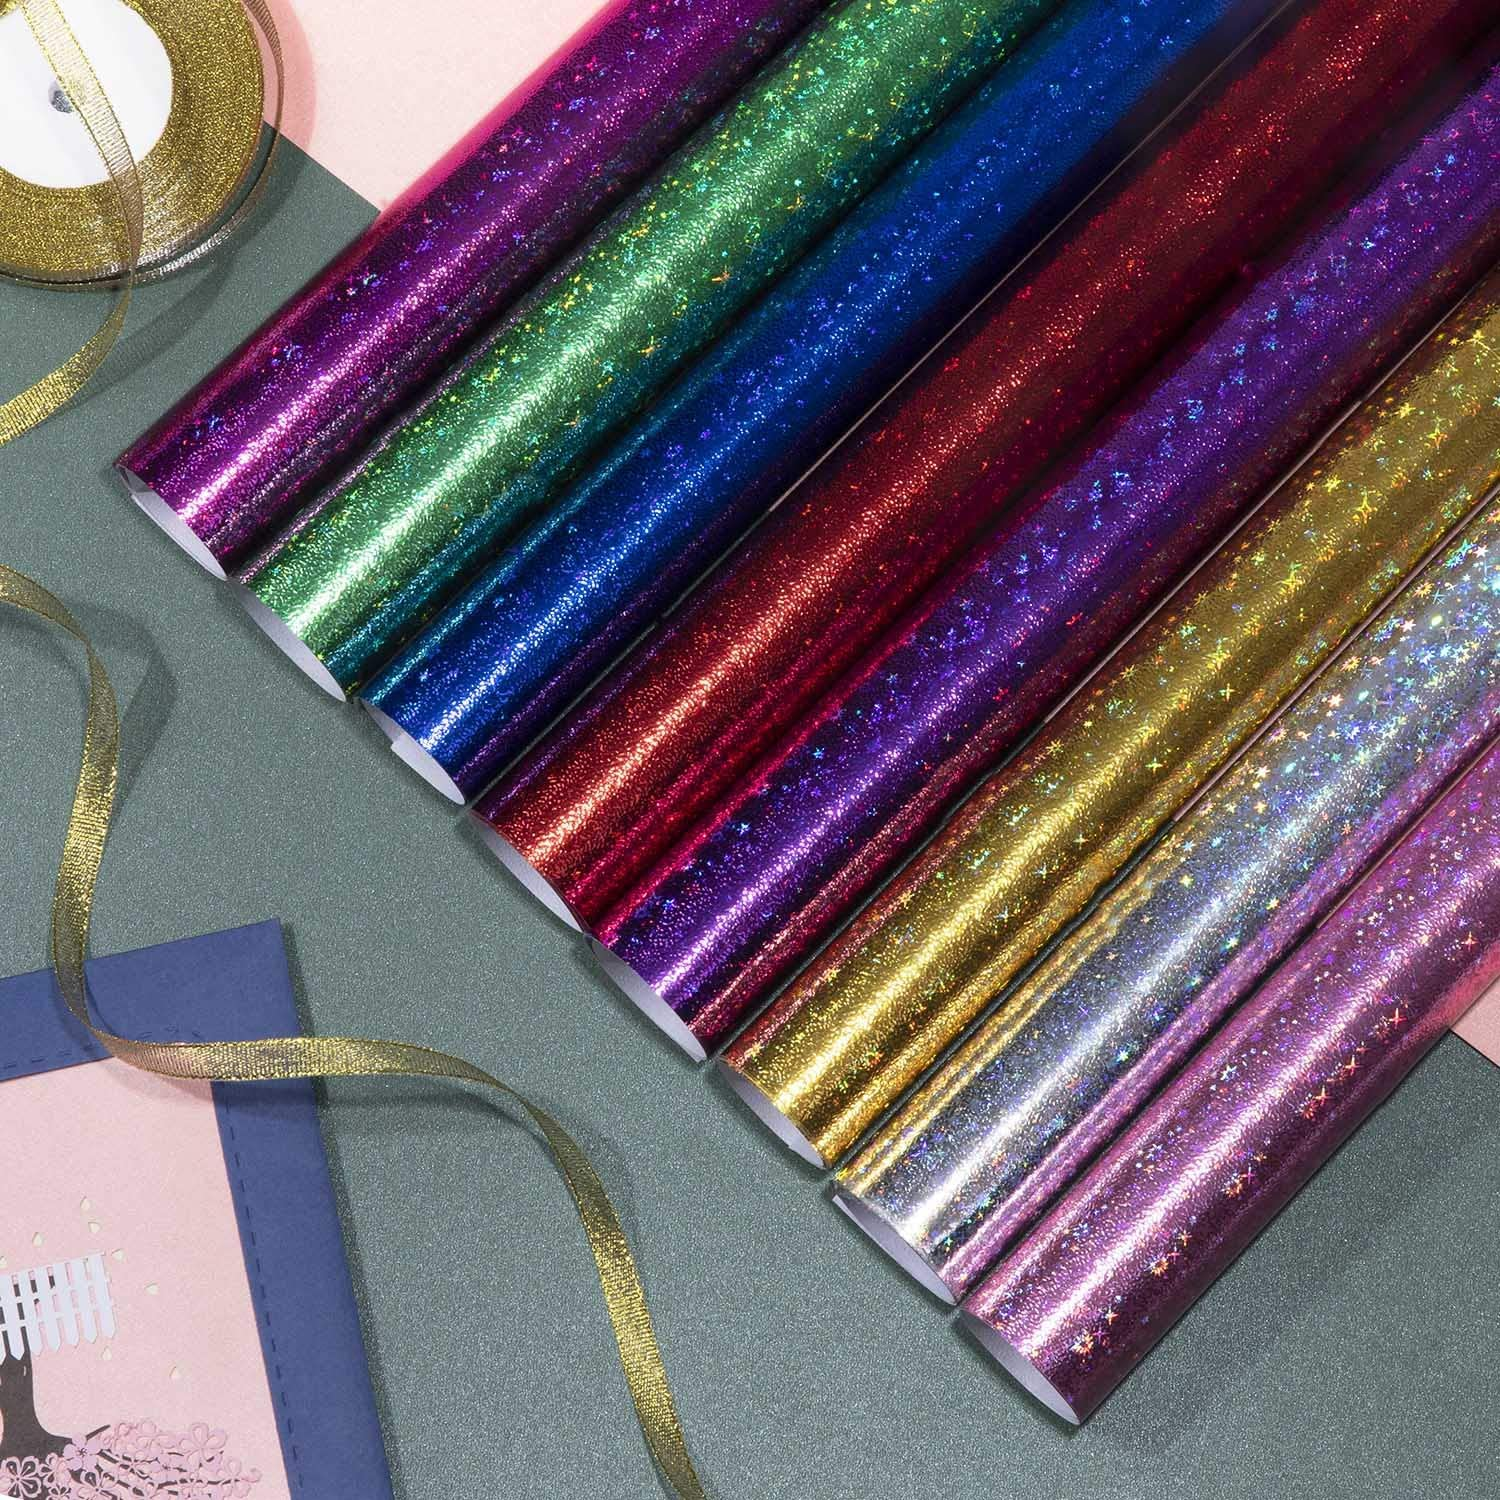 Valentines Day Kids Girls Boys Birthday Wrapping Paper for Birthday 8 Sheets Colorful Stars Wrapping Paper with 2 roll Organza Ribbon Christmas Gift Wrap Jolintek Gift Wrapping Paper Sheets